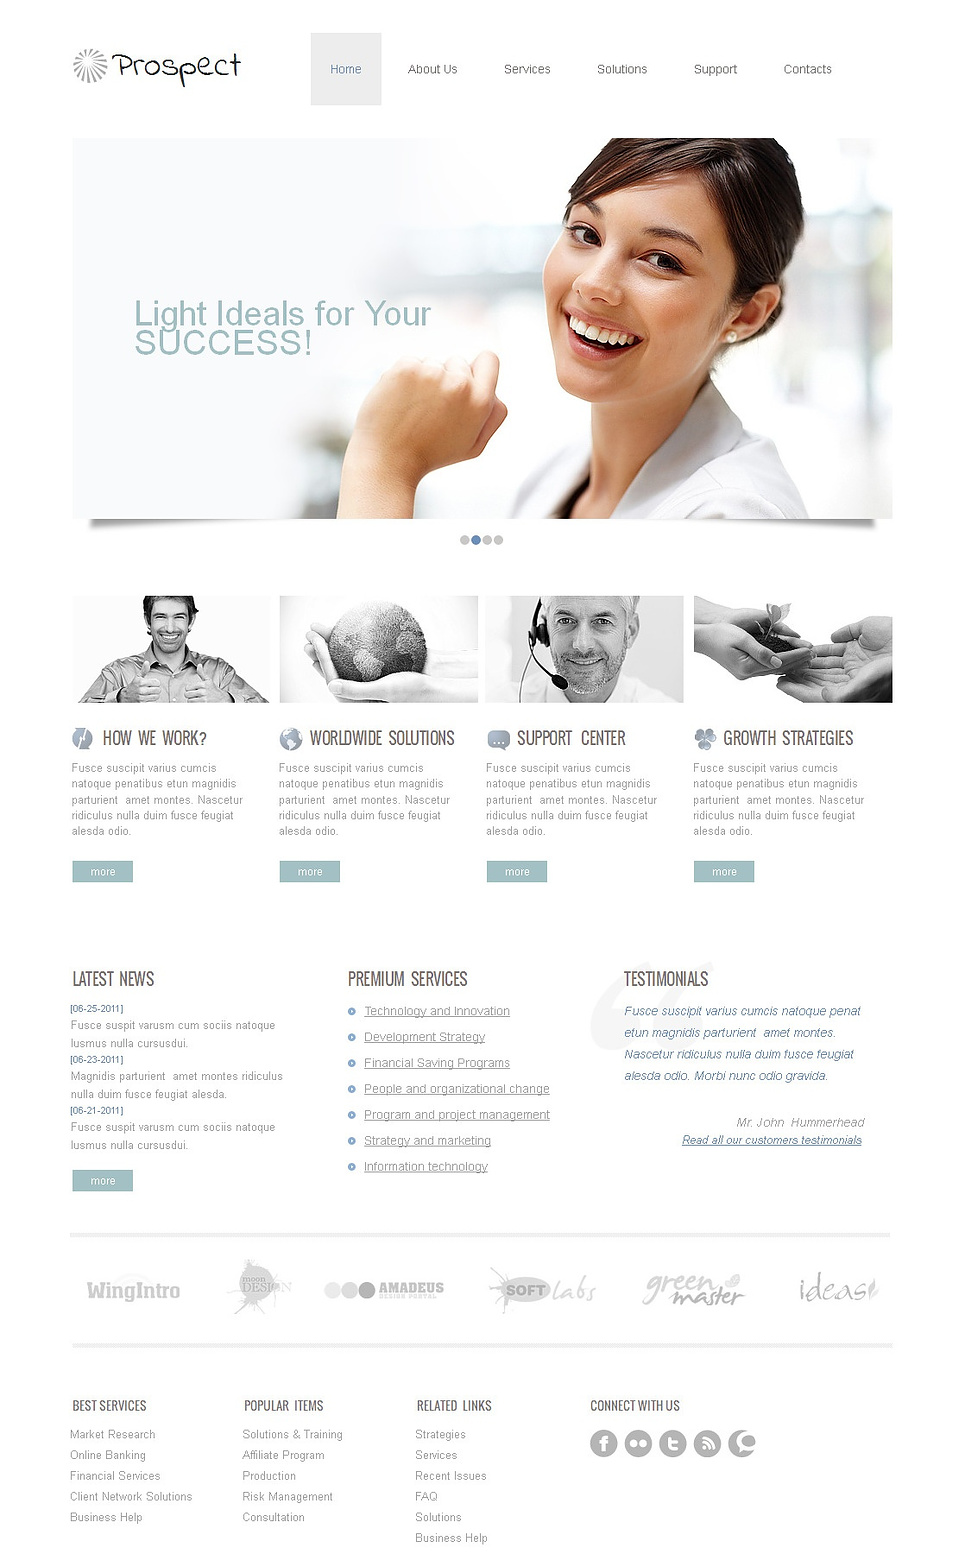 White Space Business Website Template Done in Clean Style - image